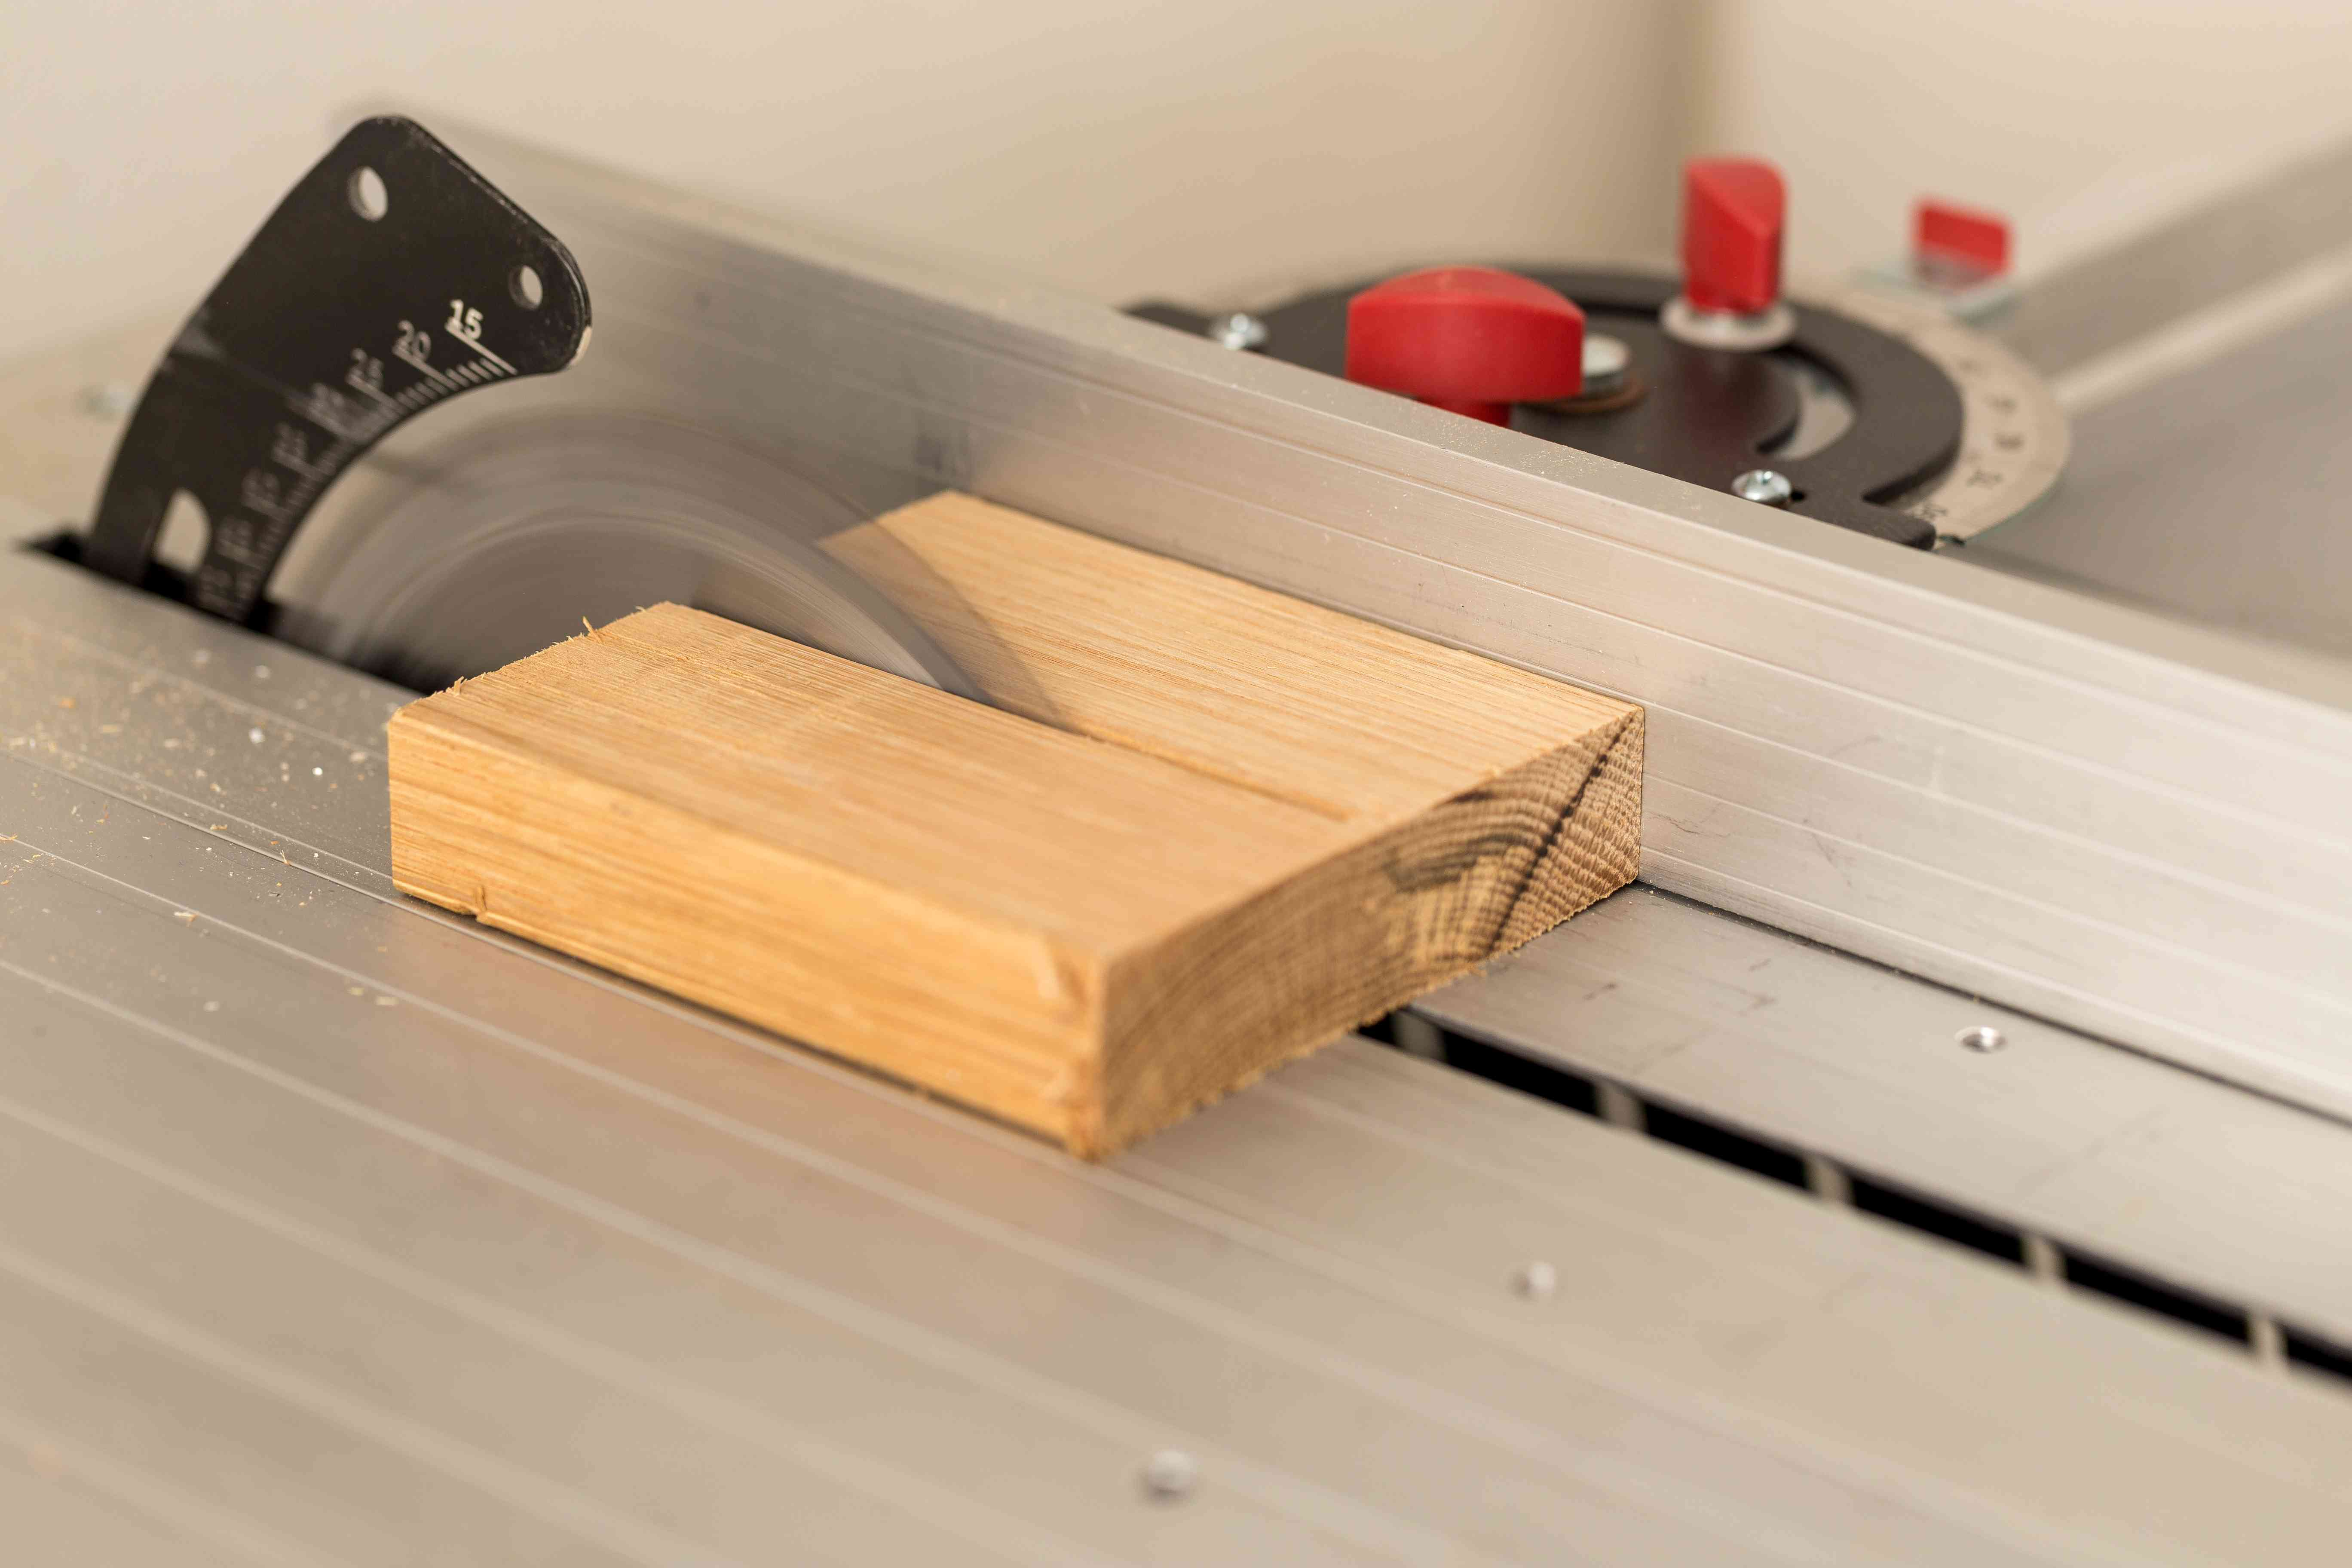 Close-Up Of Wood Being Cut With Circular Saw On Table